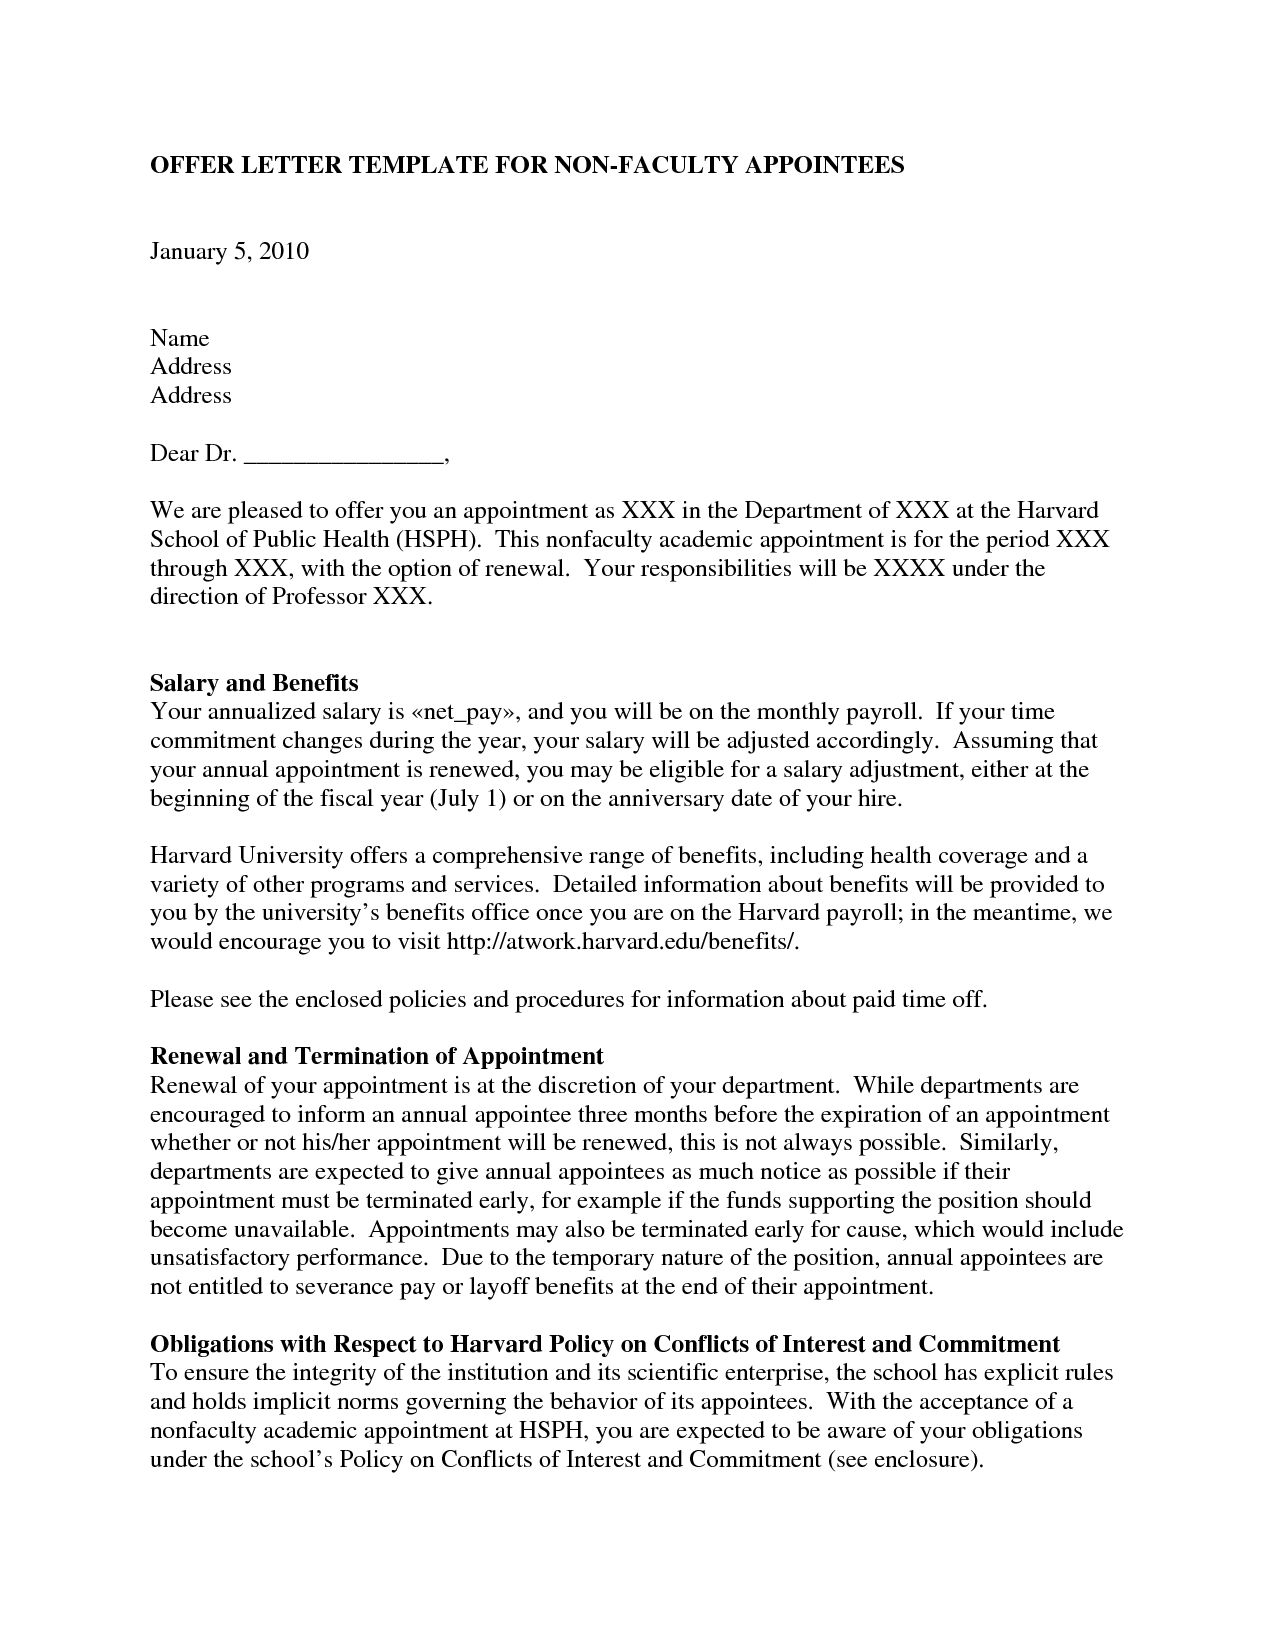 harvard acceptance letter to get an admissions acceptance letter harvard acceptance letter to get an admissions acceptance letter into harvard university you need harvard acceptancesample